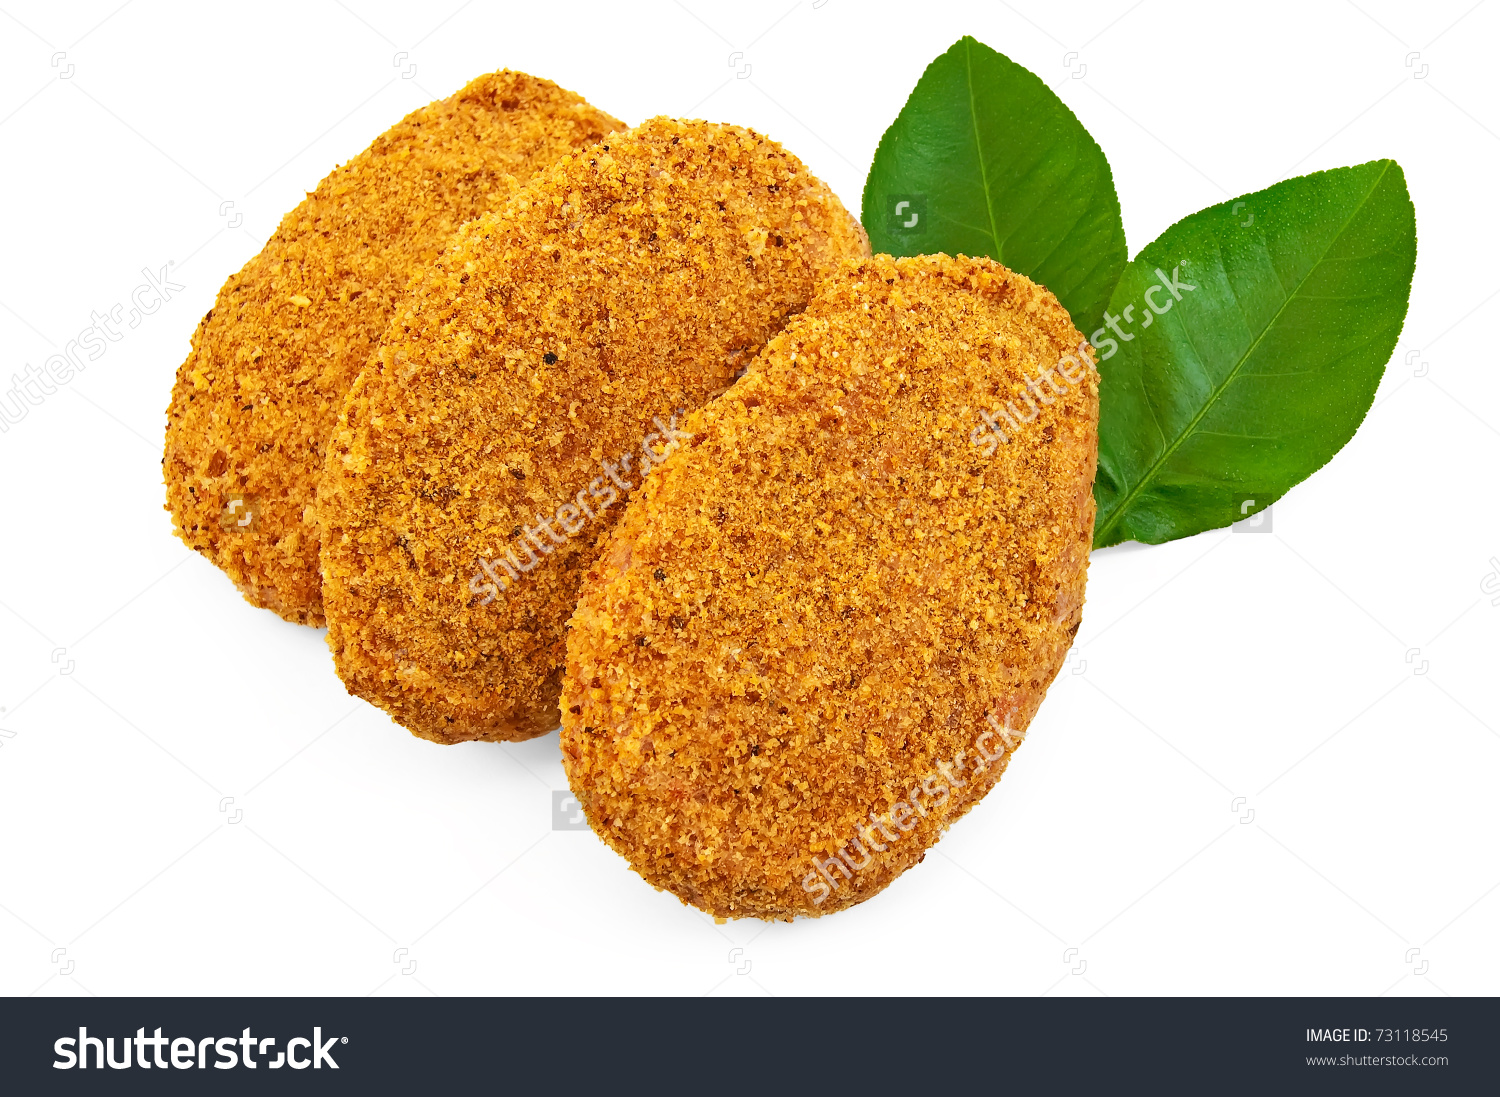 Three Frozen Chicken Cutlets Bread Crumbs Stock Photo 73118545.